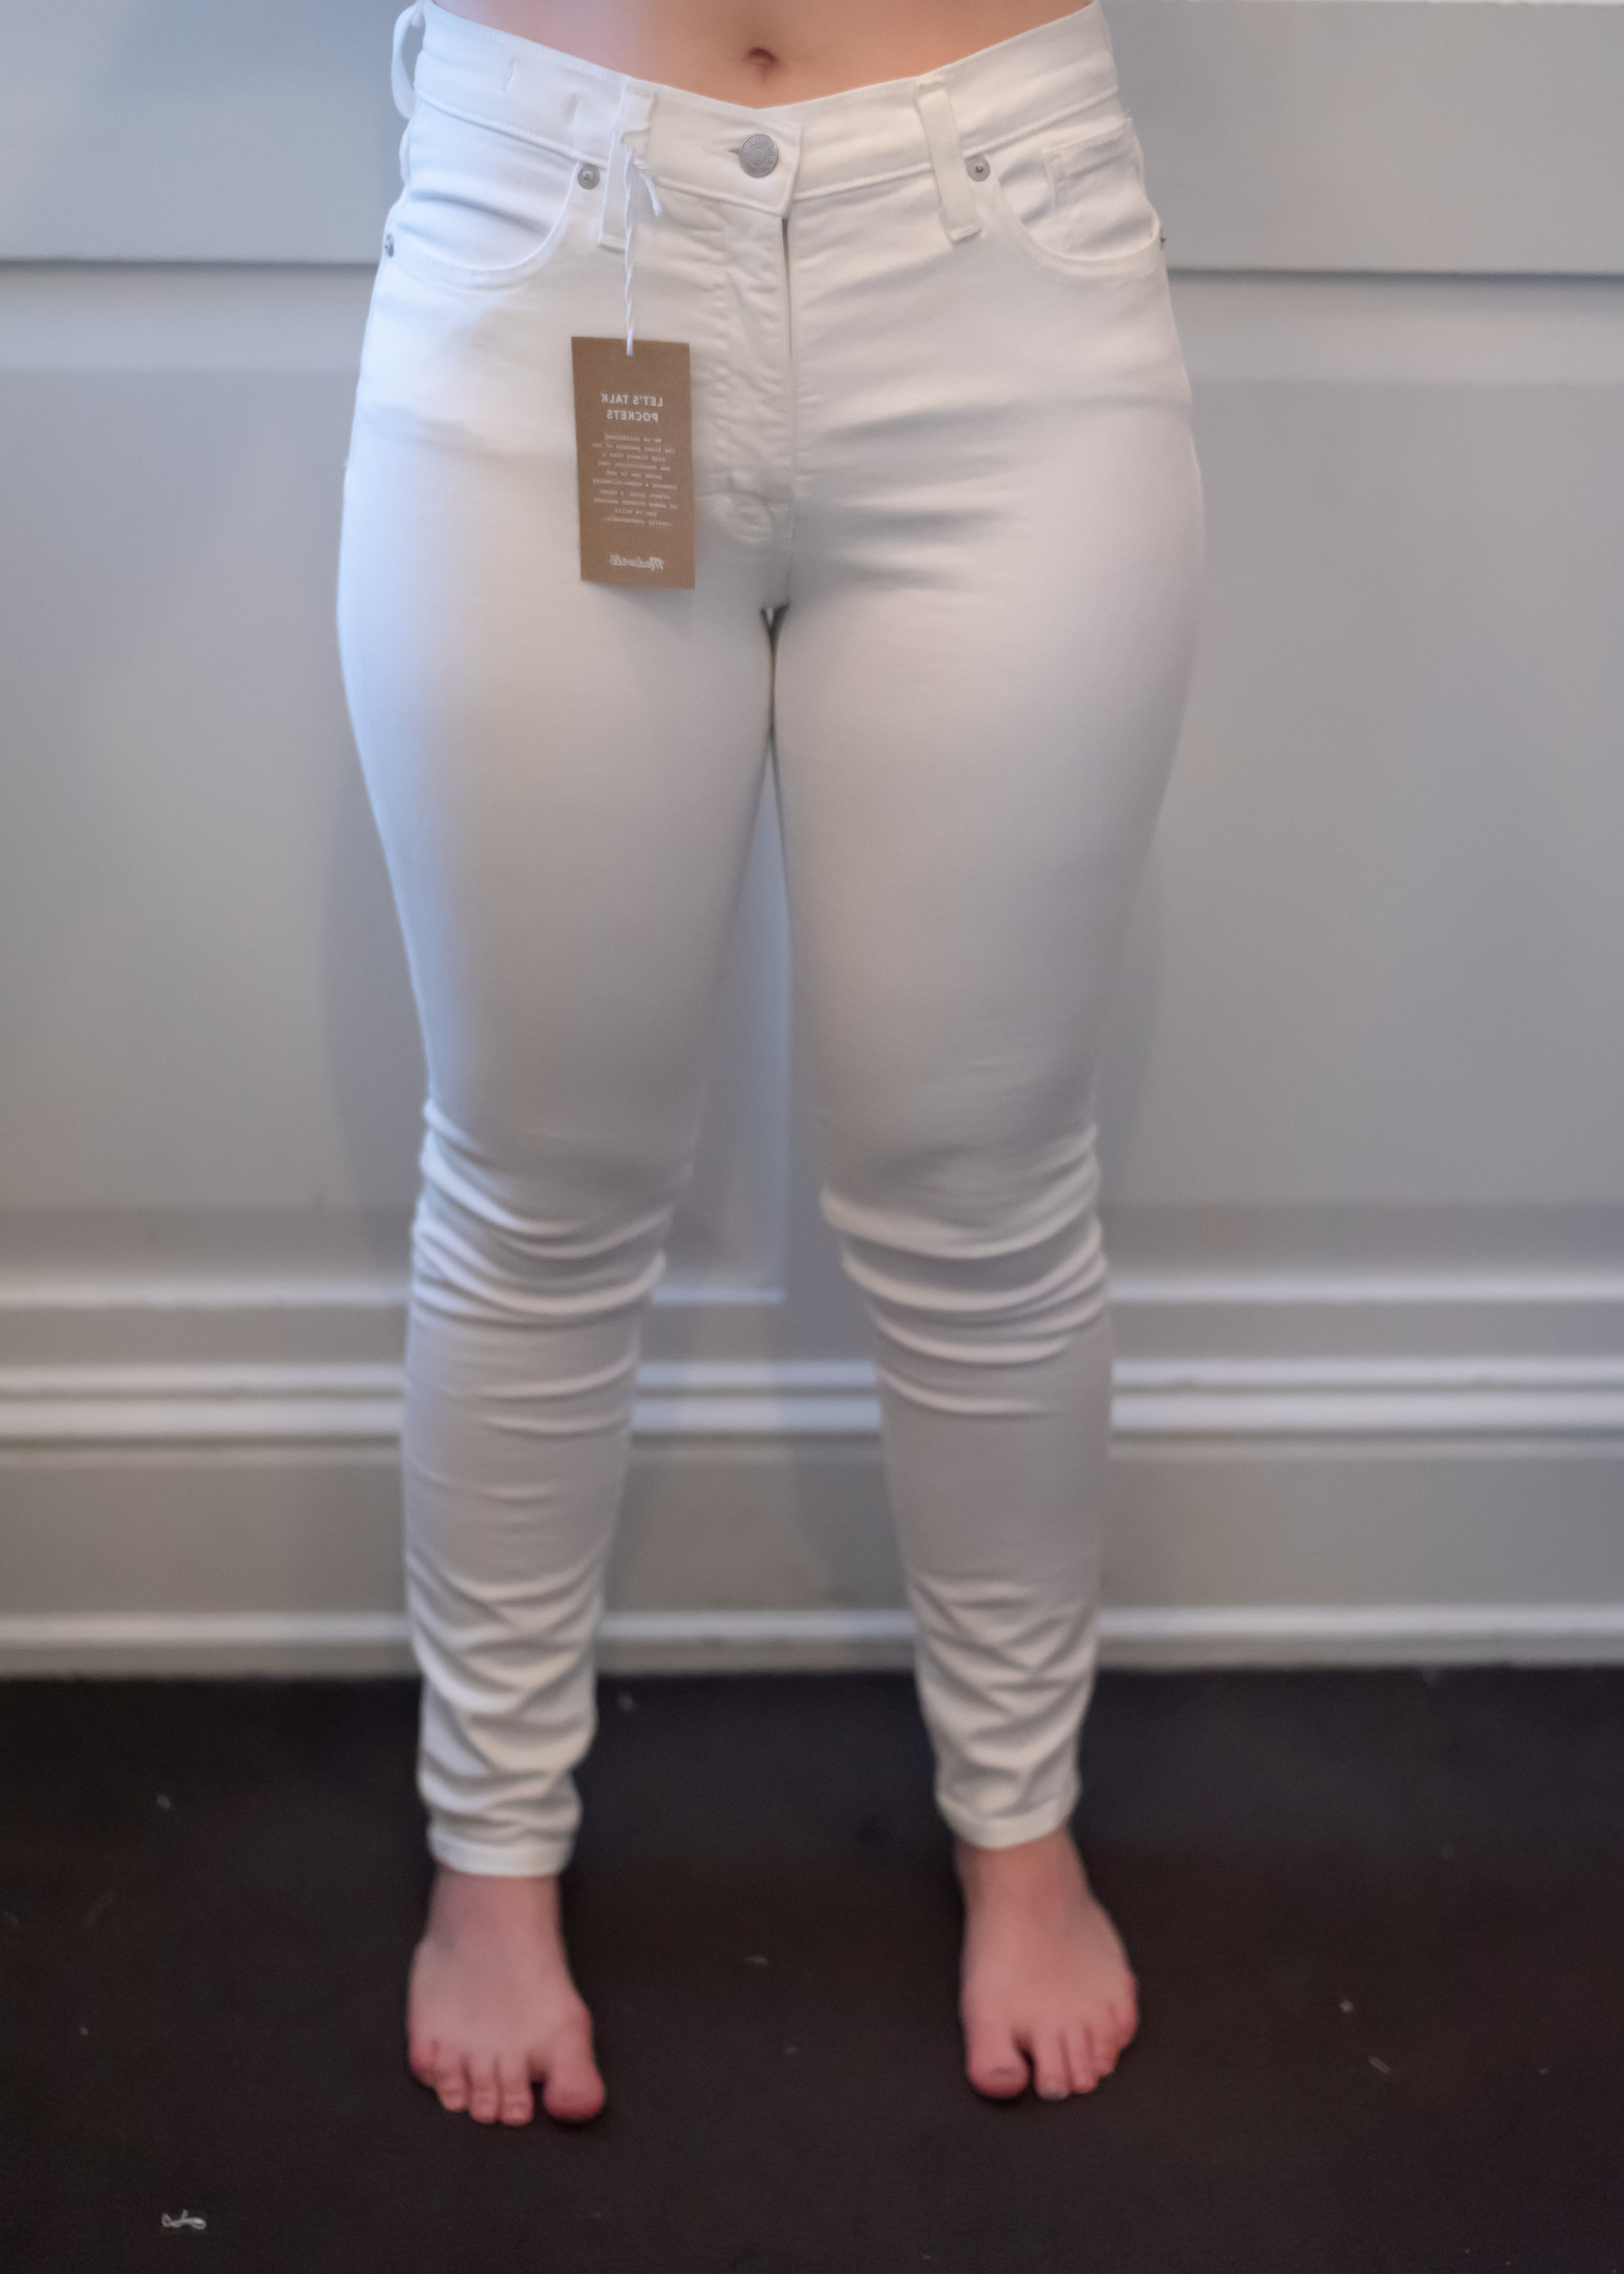 Madewell High Rise Skinny Jeans - Size 28 - Front View